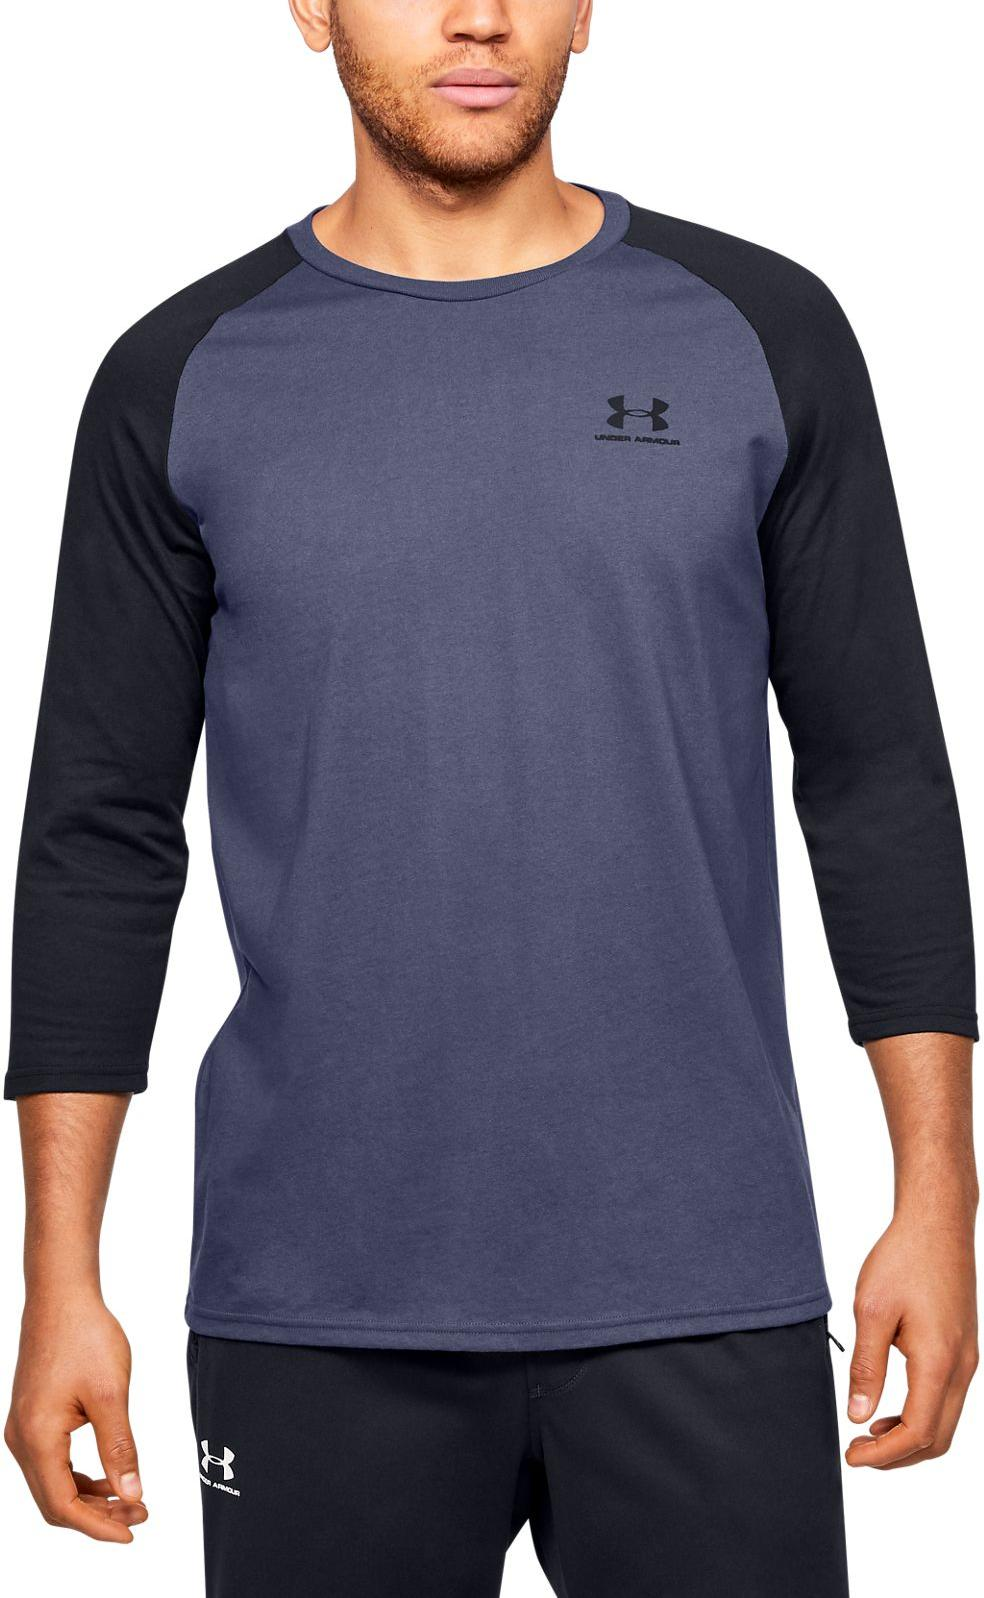 Tee-shirt Under Armour SPORTSTYLE LEFT CHEST 3/4 TEE